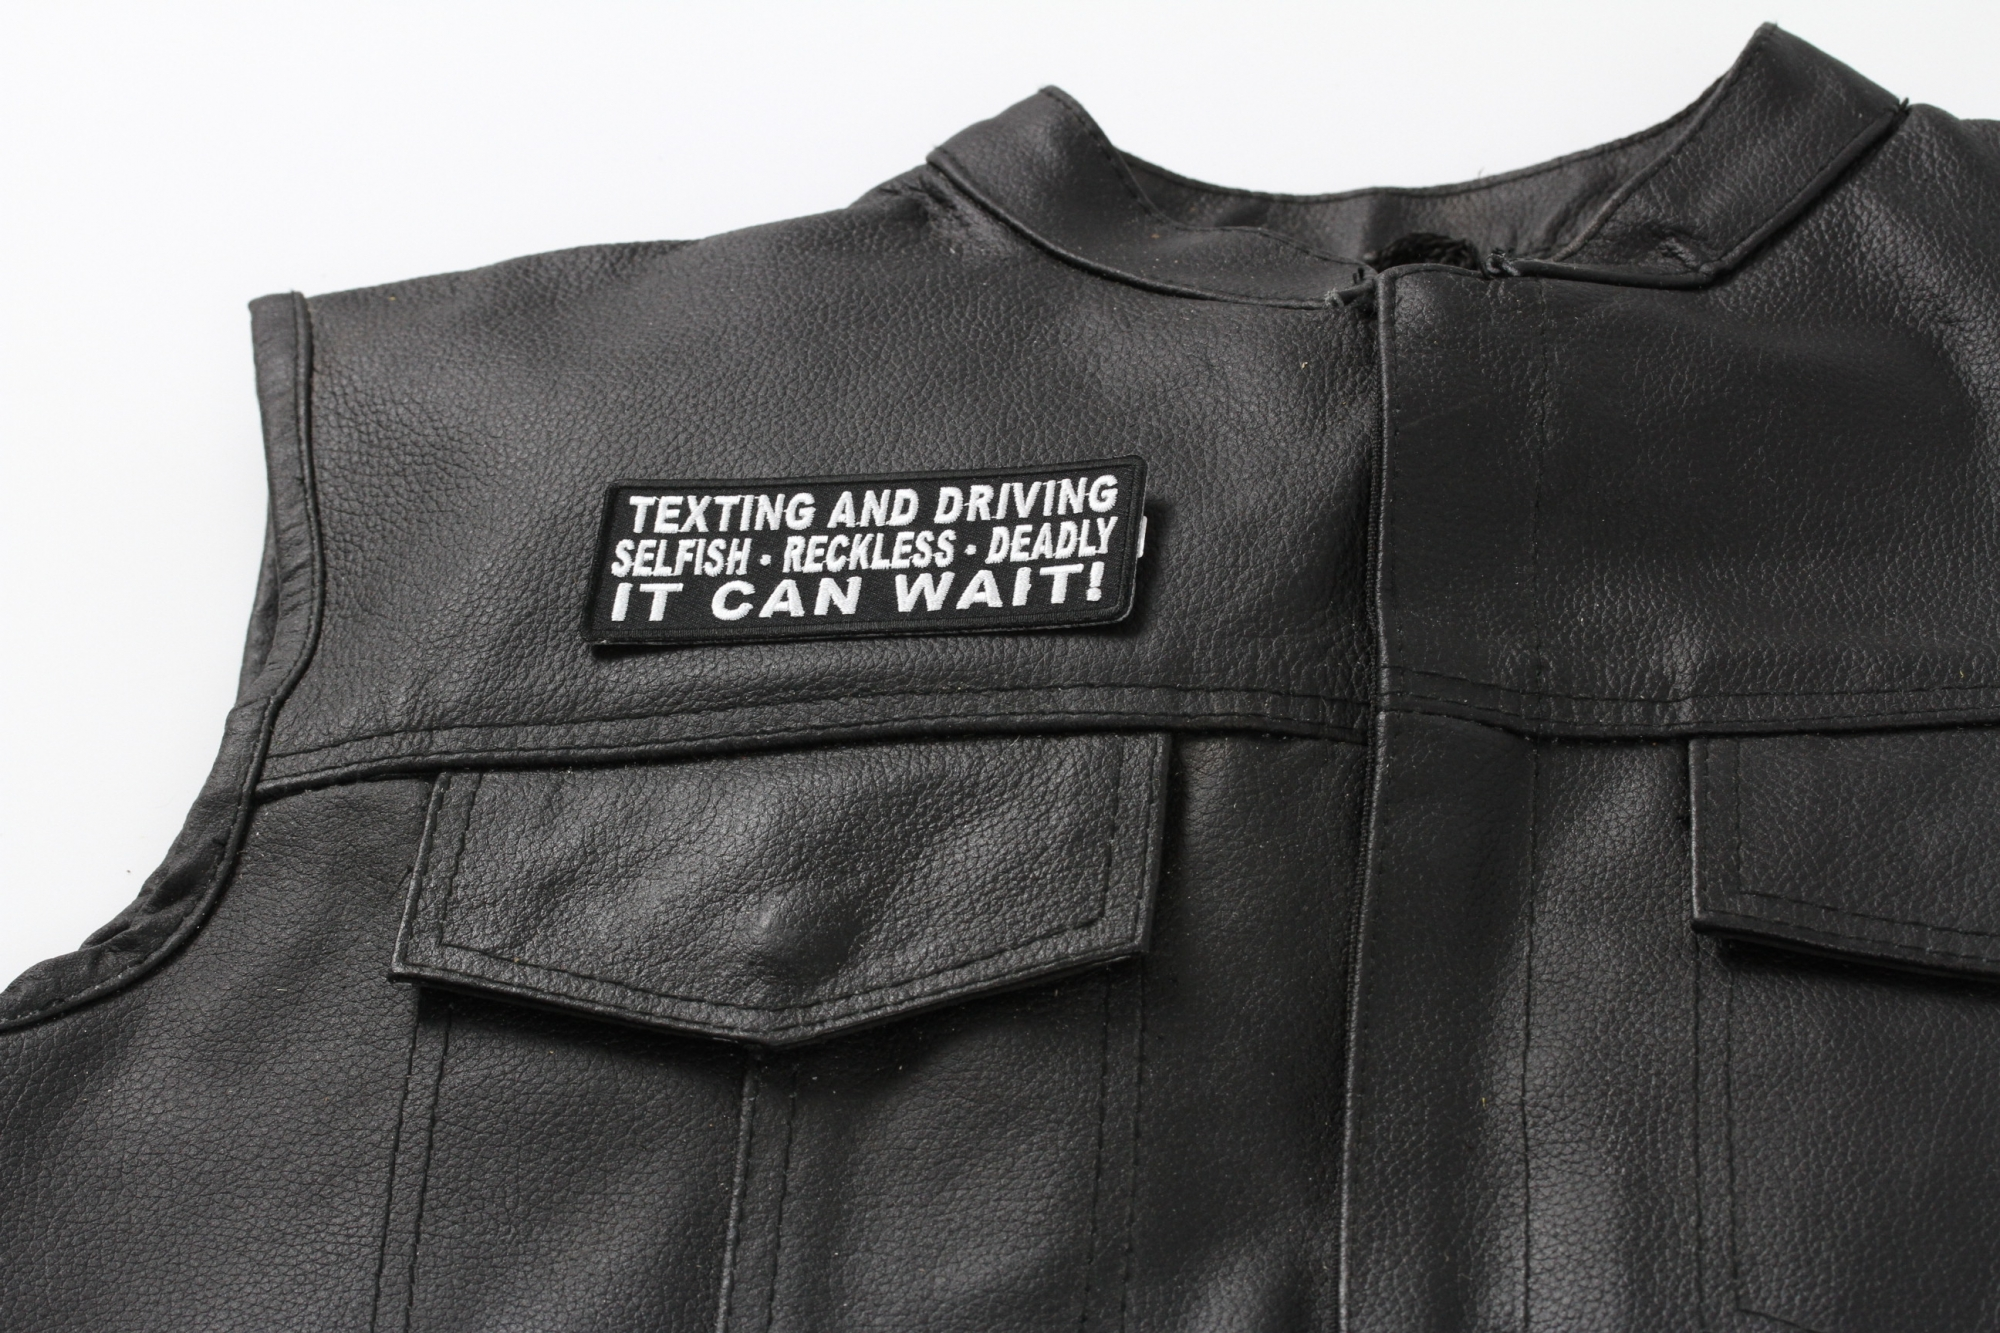 You Would Drive Better With That Phone Shoved Up Your Ass Iron on Patch